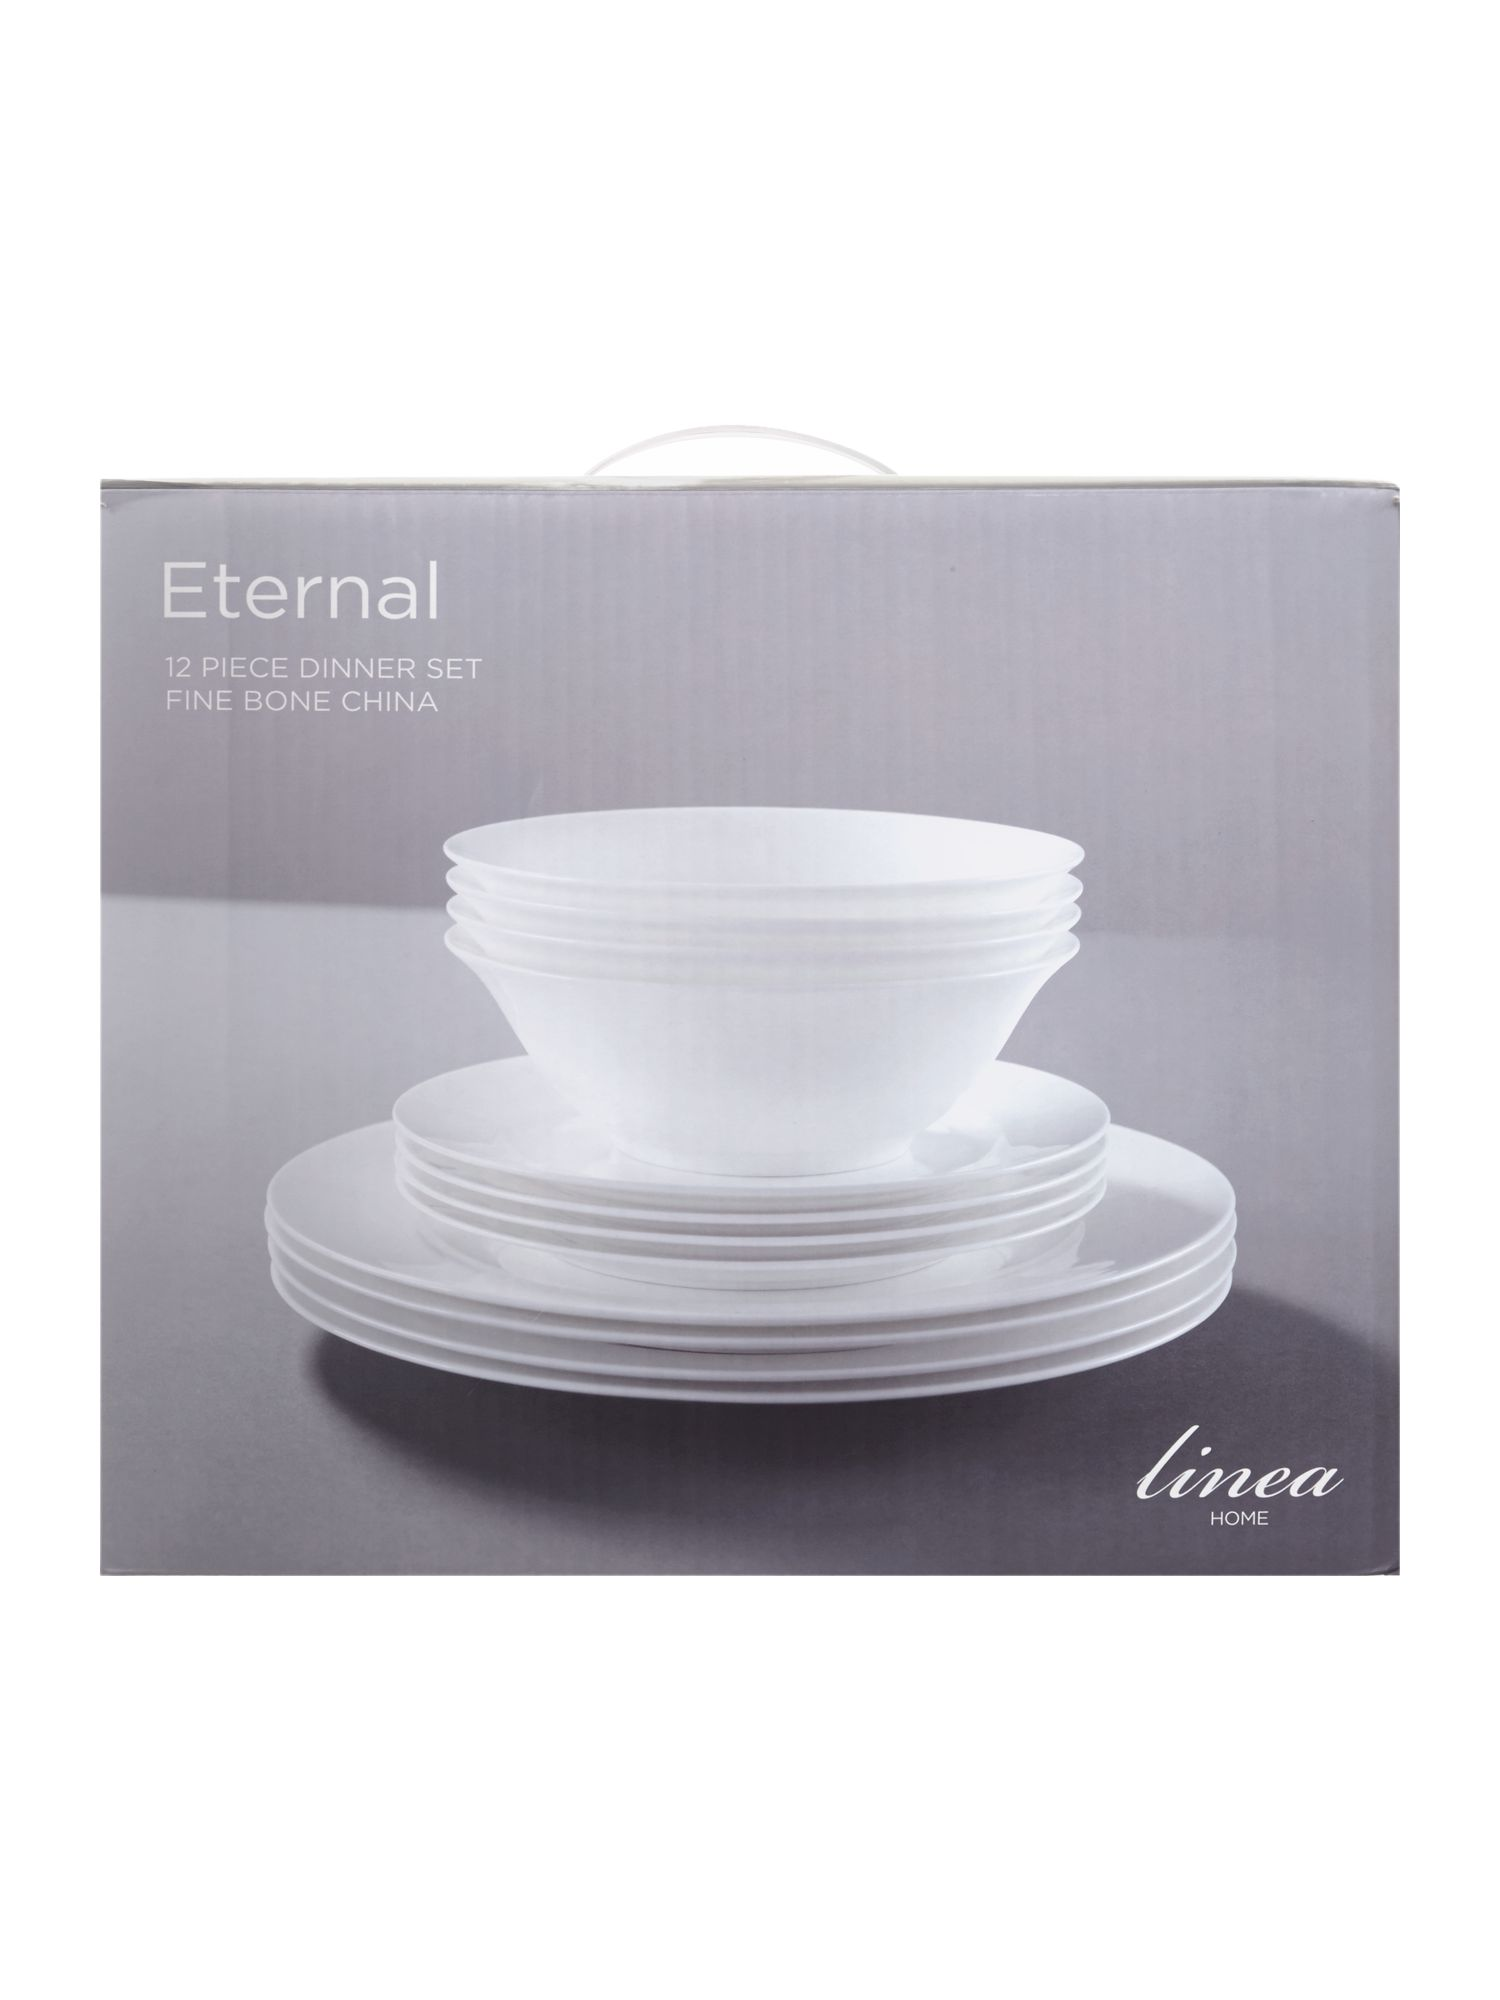 Eternal 12 piece box set